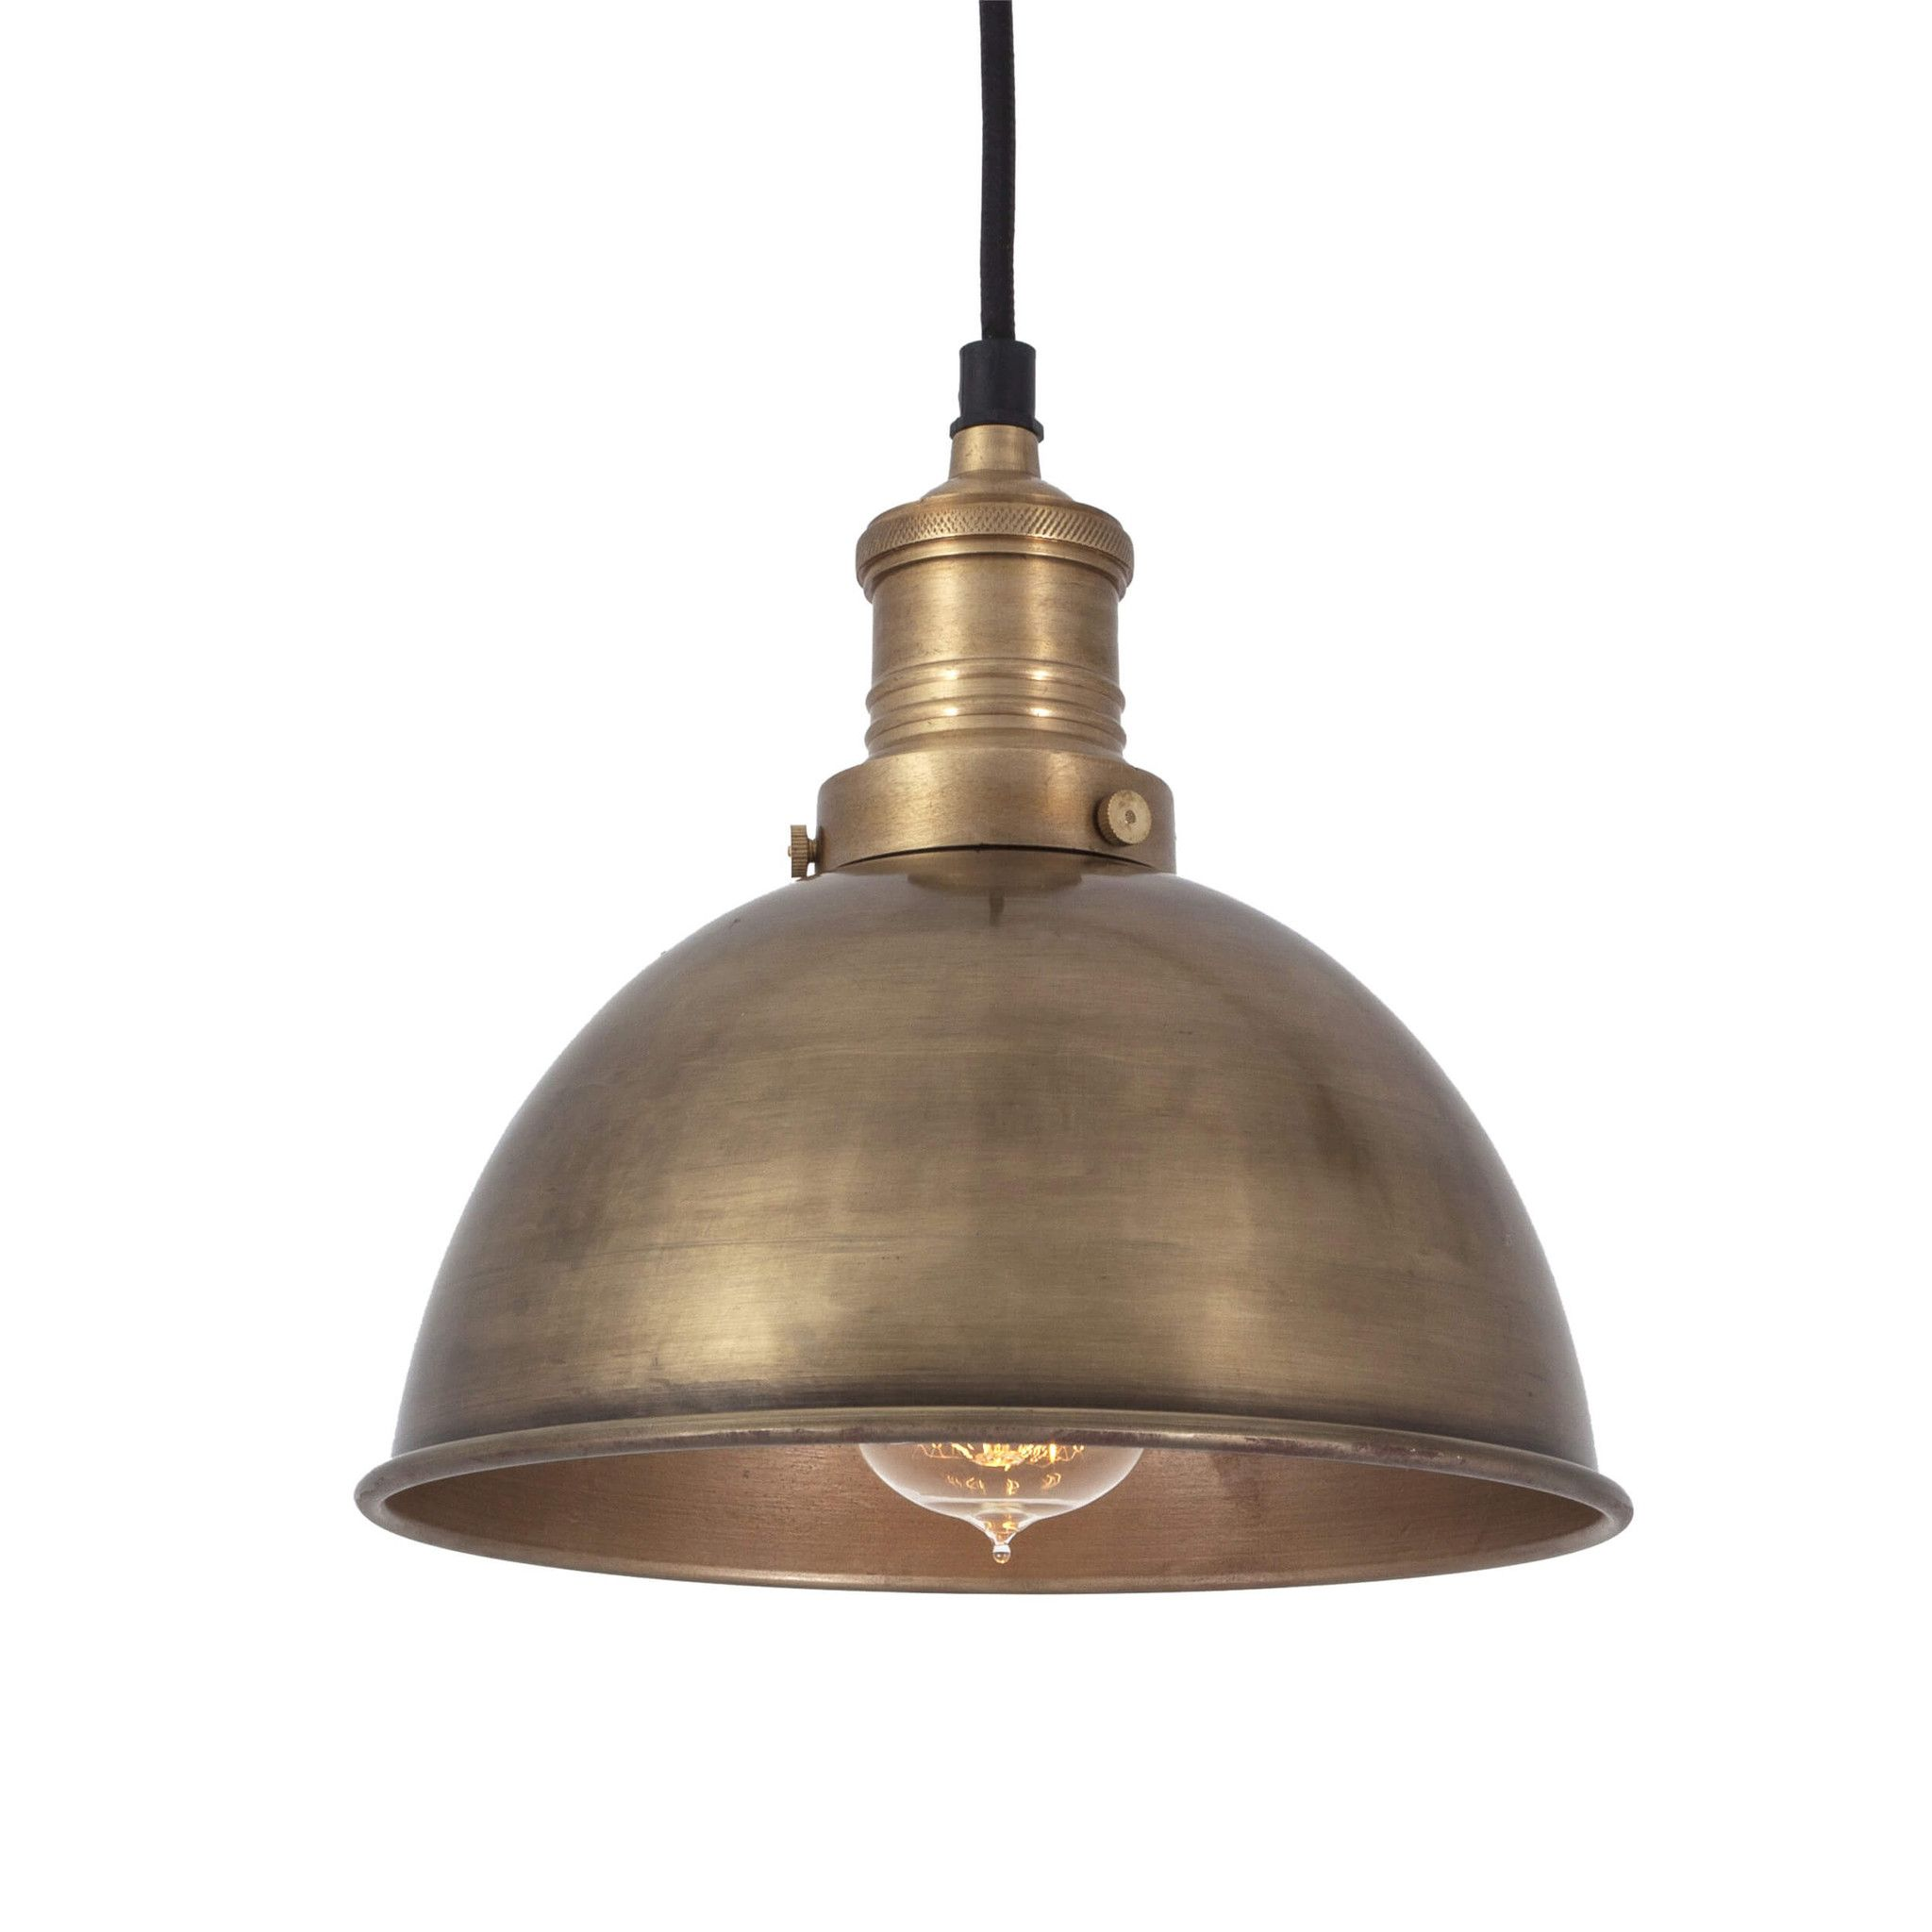 Brooklyn Dome Pendant - 8 Inch - Brass #951ryecourt